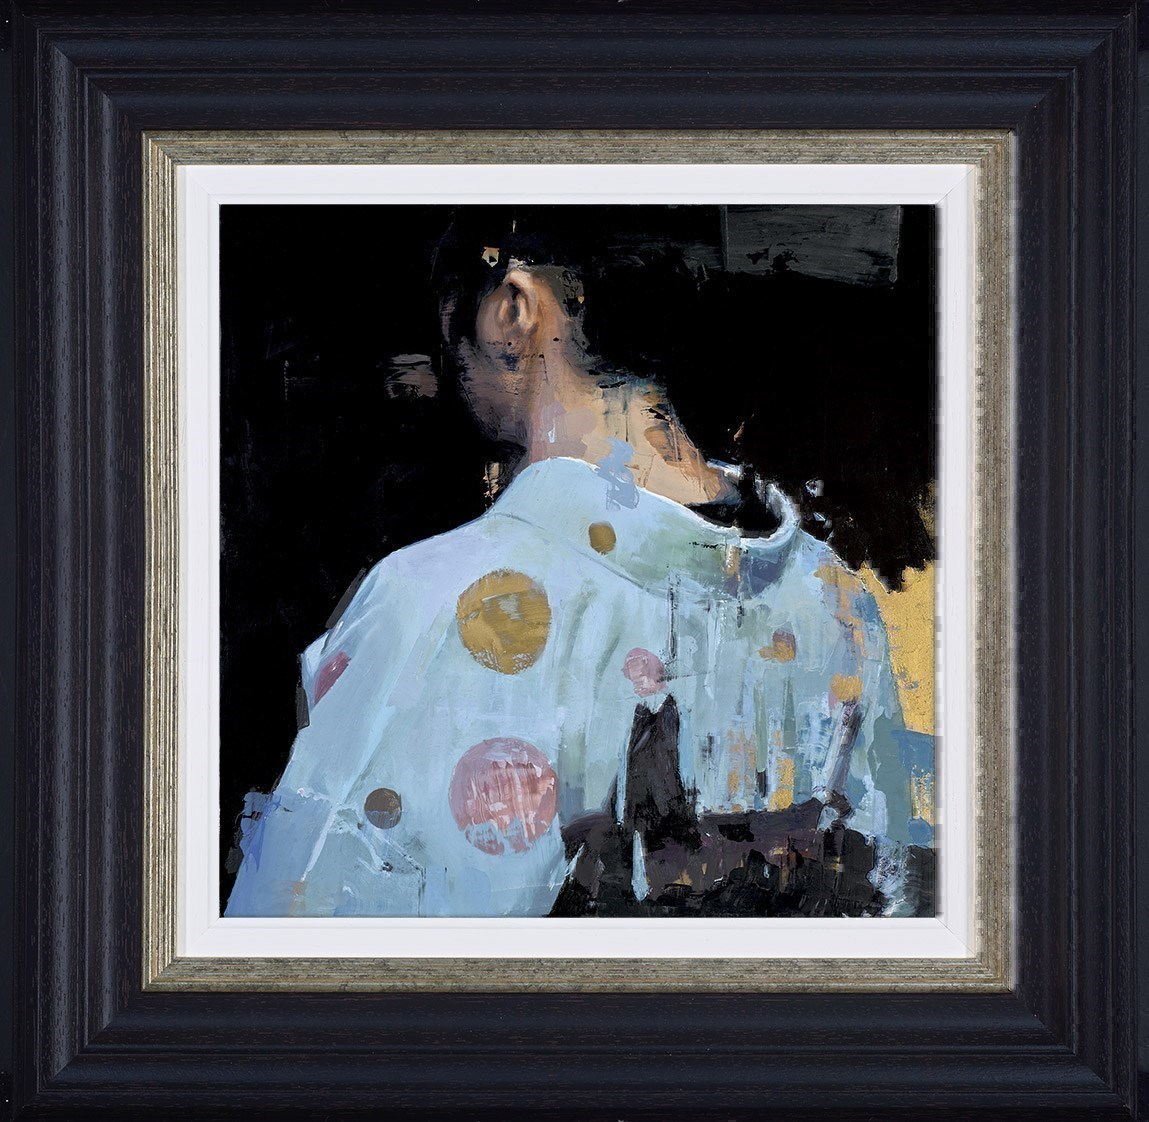 Kimono Blues by Christian Hook - Limited Edition Paper on Board sized 14x14 inches. Available from Whitewall Galleries